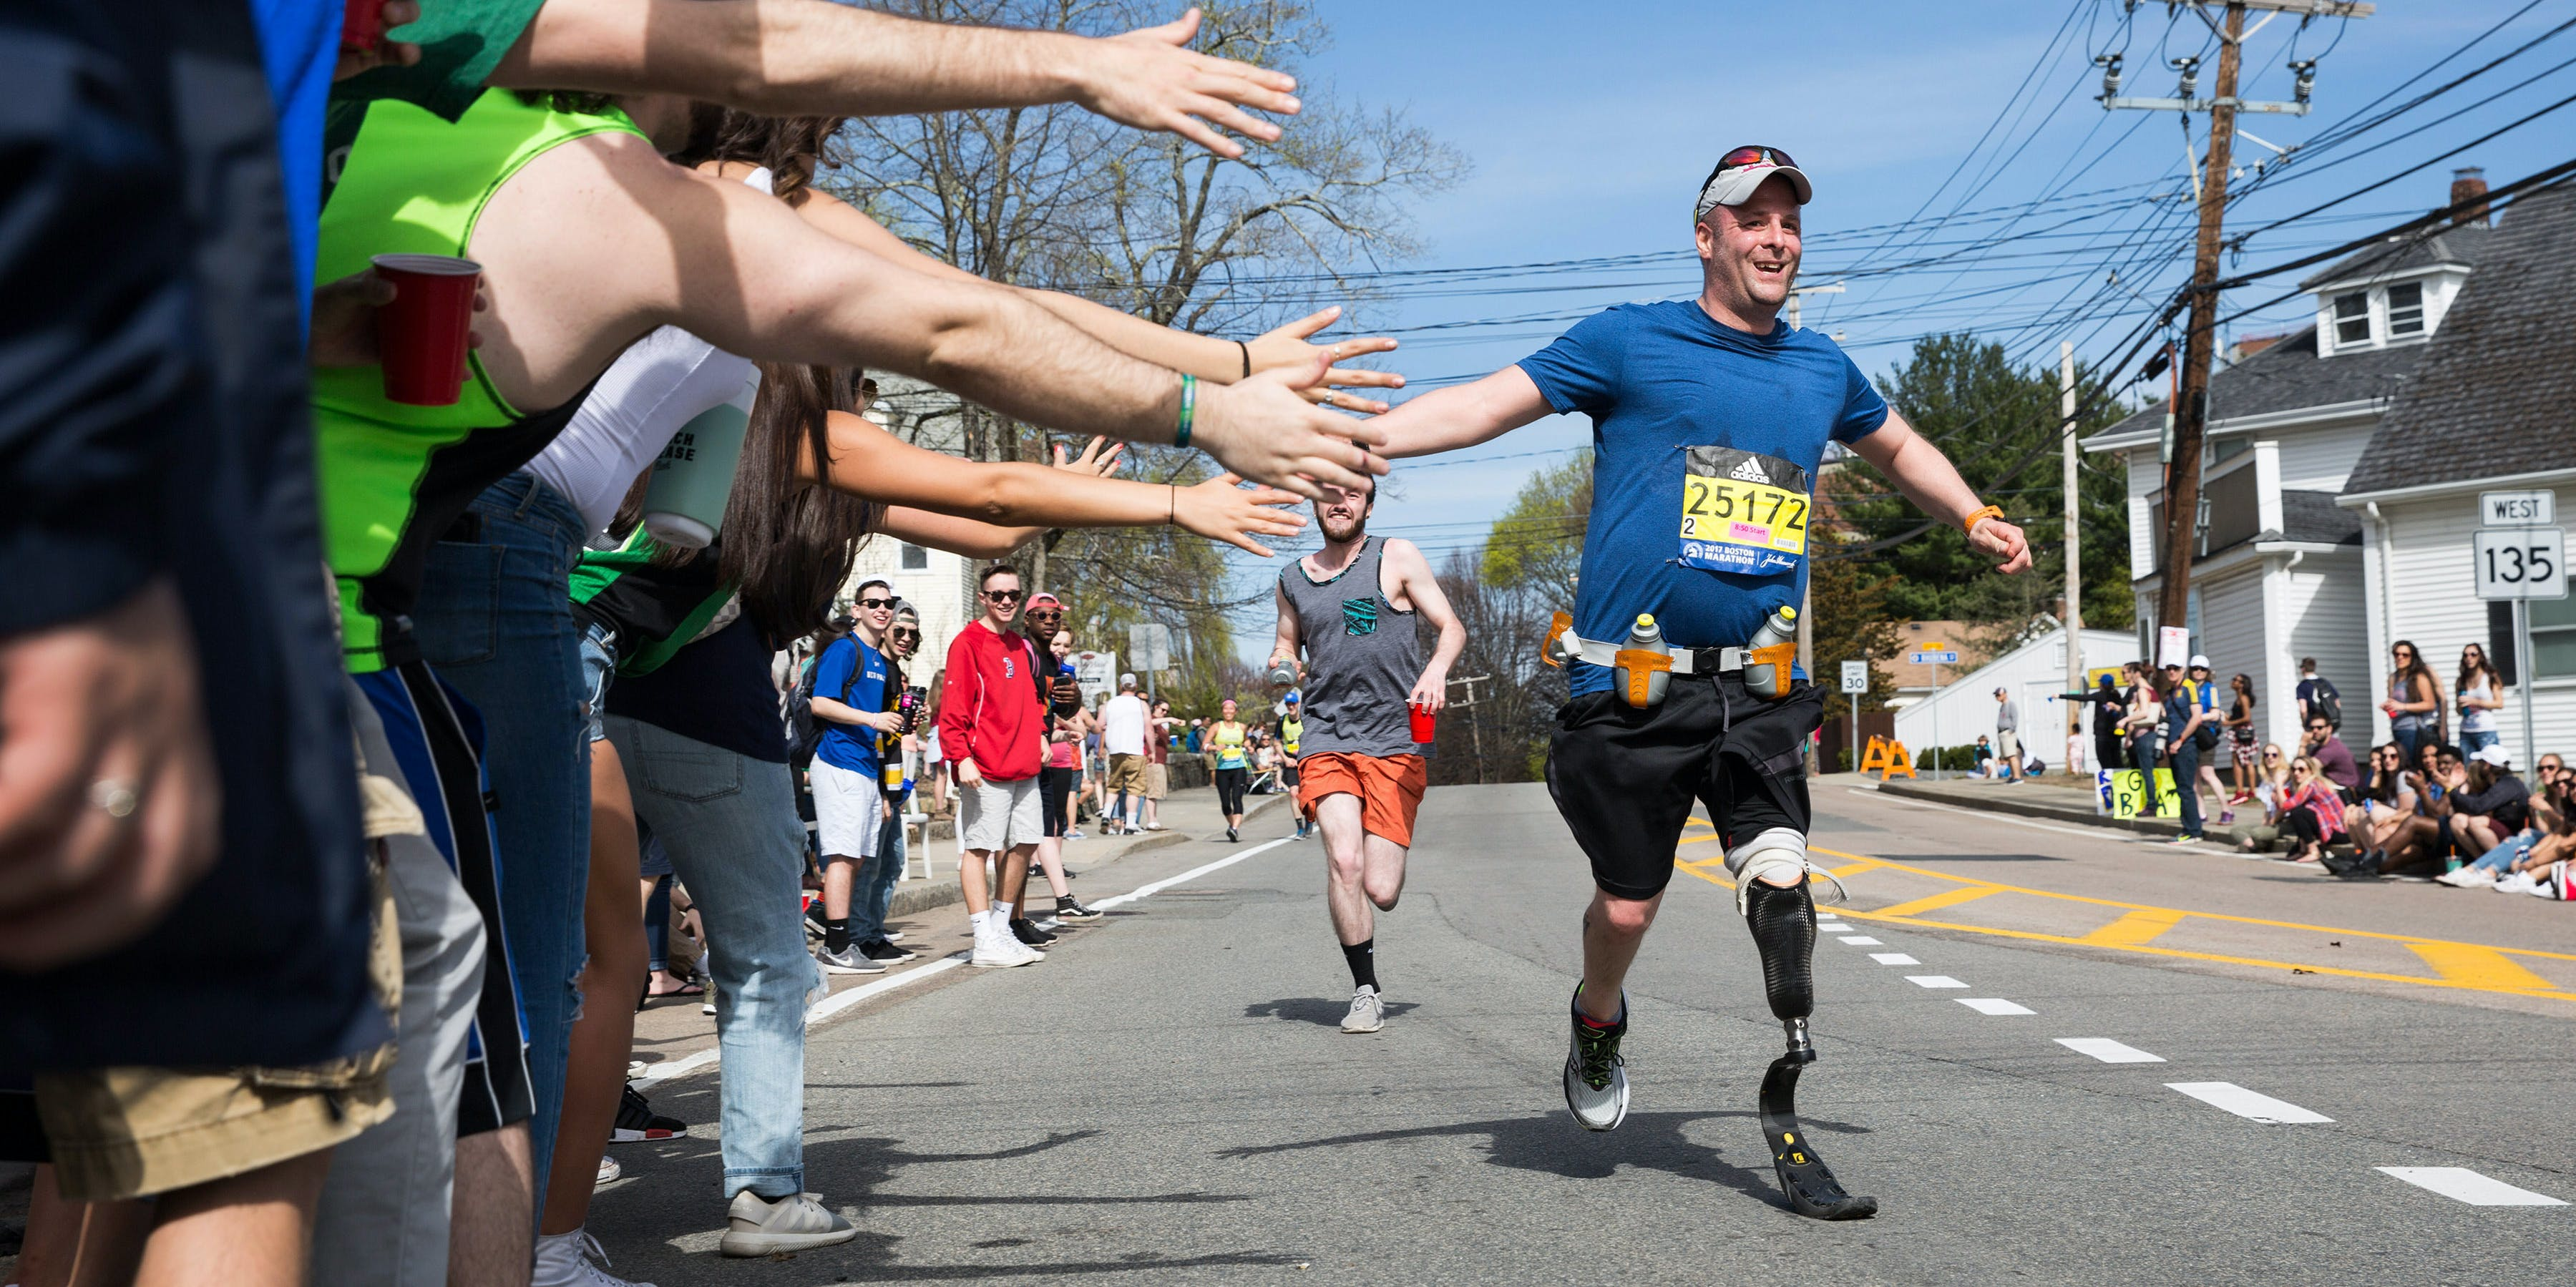 FRAMINGHAM, MA - APRIL 17: Spectators give high fives to a disabled runner as he makes his way past the 6 mile mark of the Boston Marathon on April 17, 2017 in Framingham, Massachusetts.  (Kayana Szymczak/Getty Images)